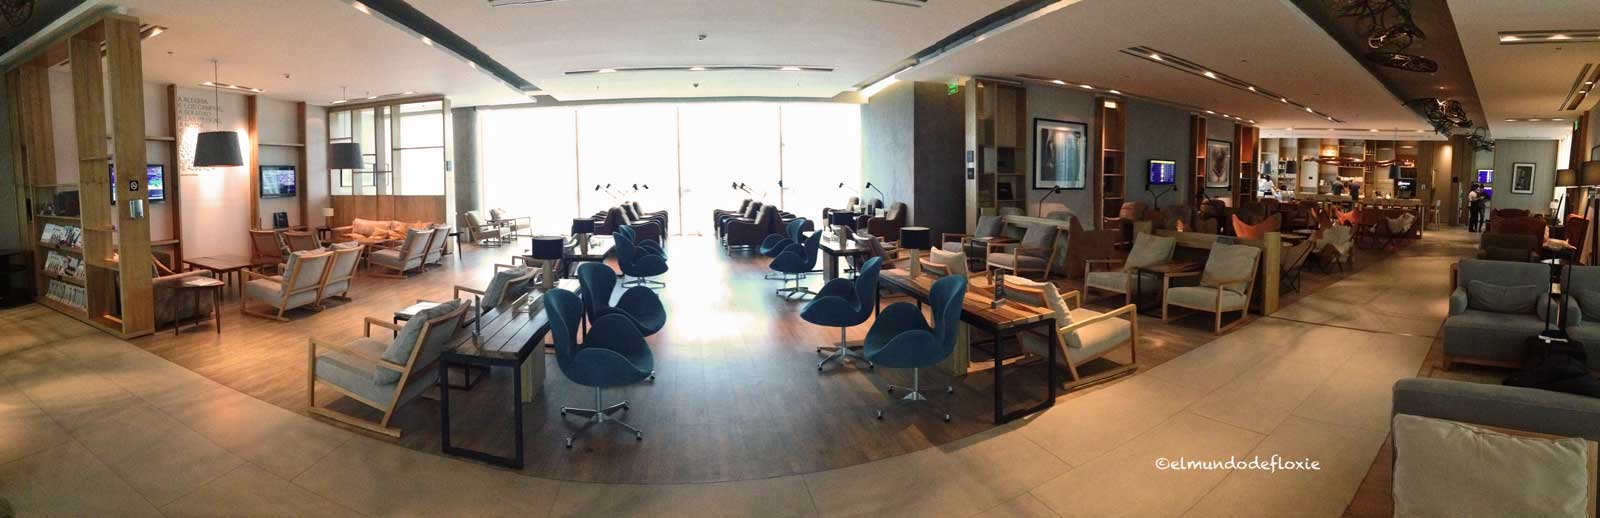 panoramicastaralliancelounge